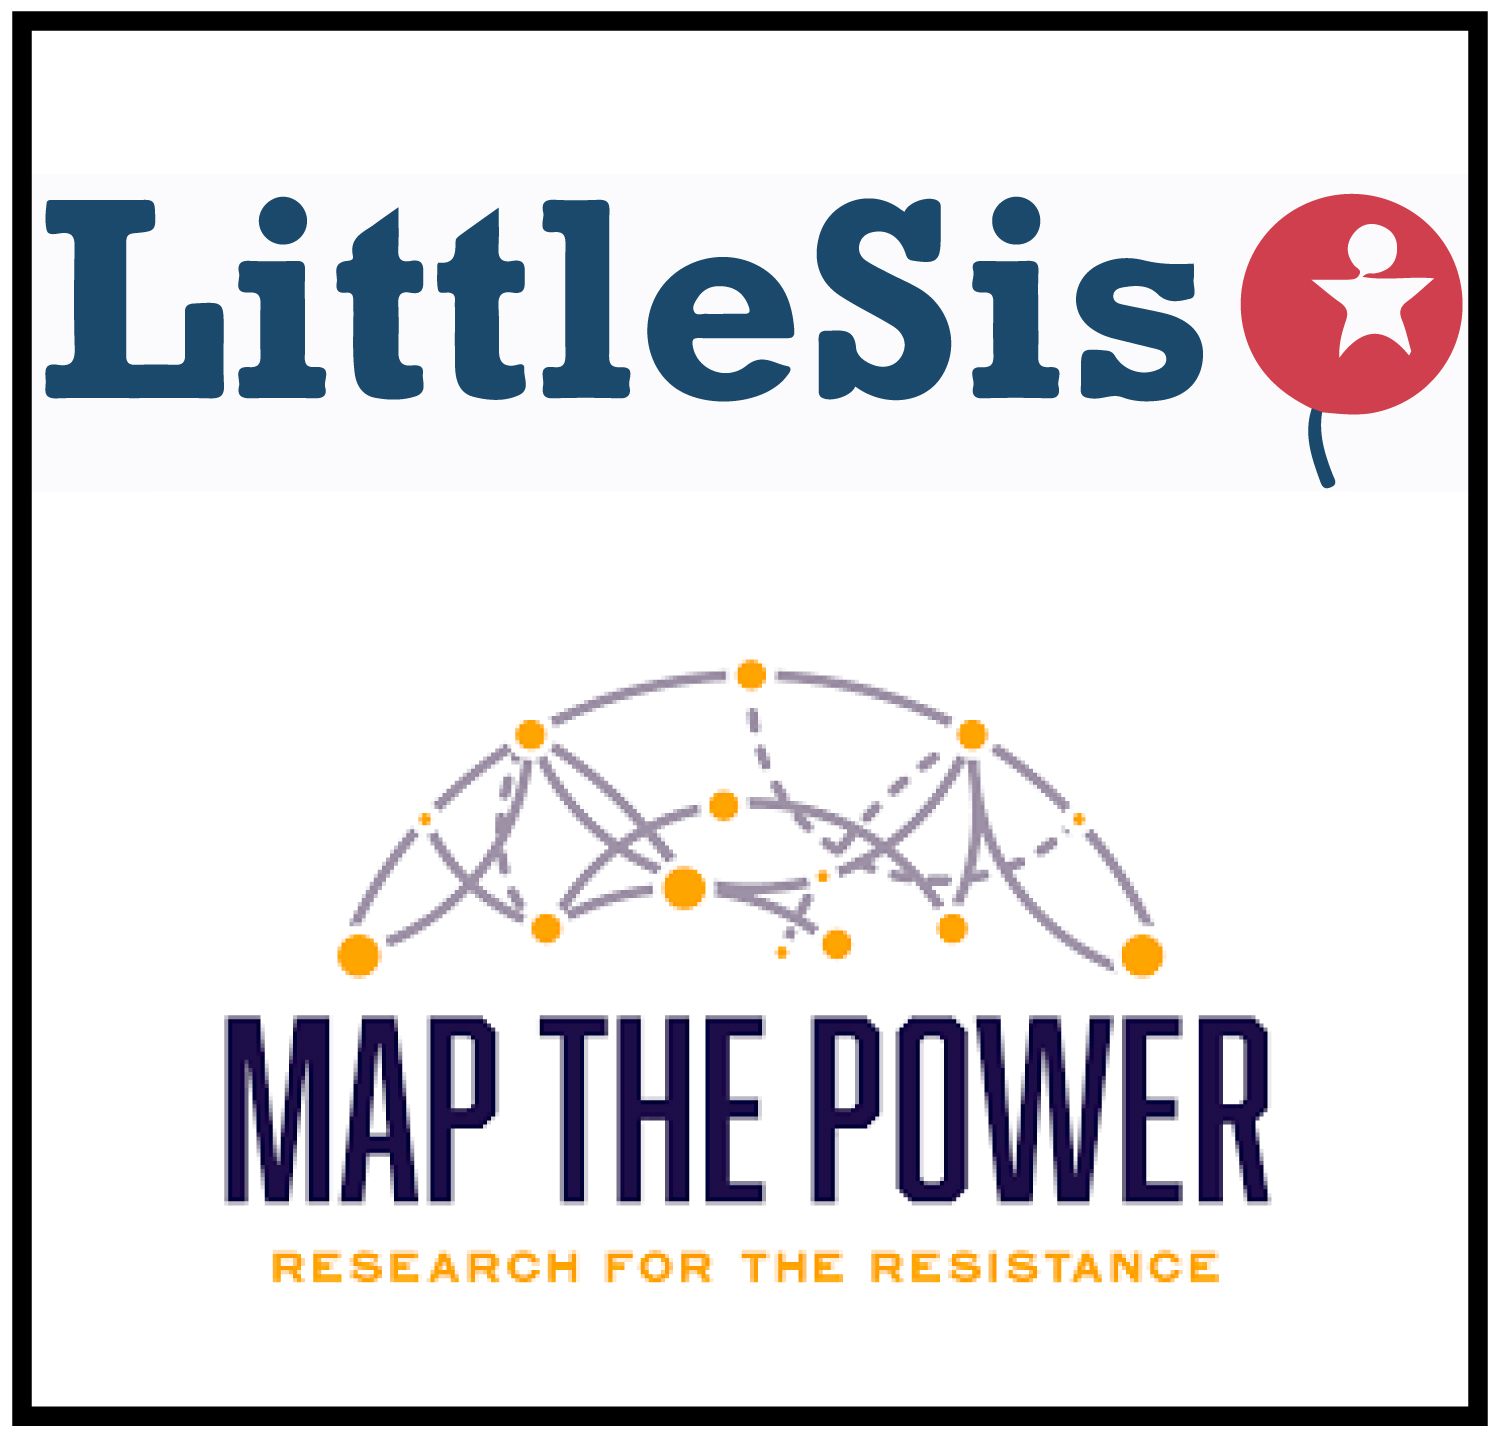 little sis.org - LittleSis (opposite of Big Brother, get it?) is a free database detailing the connections between powerful people and organizations that brings transparency to influential social networks by tracking the key relationships of politicians, business leaders, lobbyists, financiers, and their affiliated institutions. They help answer questions such as:Who do the wealthiest Americans donate their money to?Where did White House officials work before they were appointed?Which lobbyists are married to politicians, and who do they lobby for?All of this information is public, but scattered. Little Sis brings it together in one place.